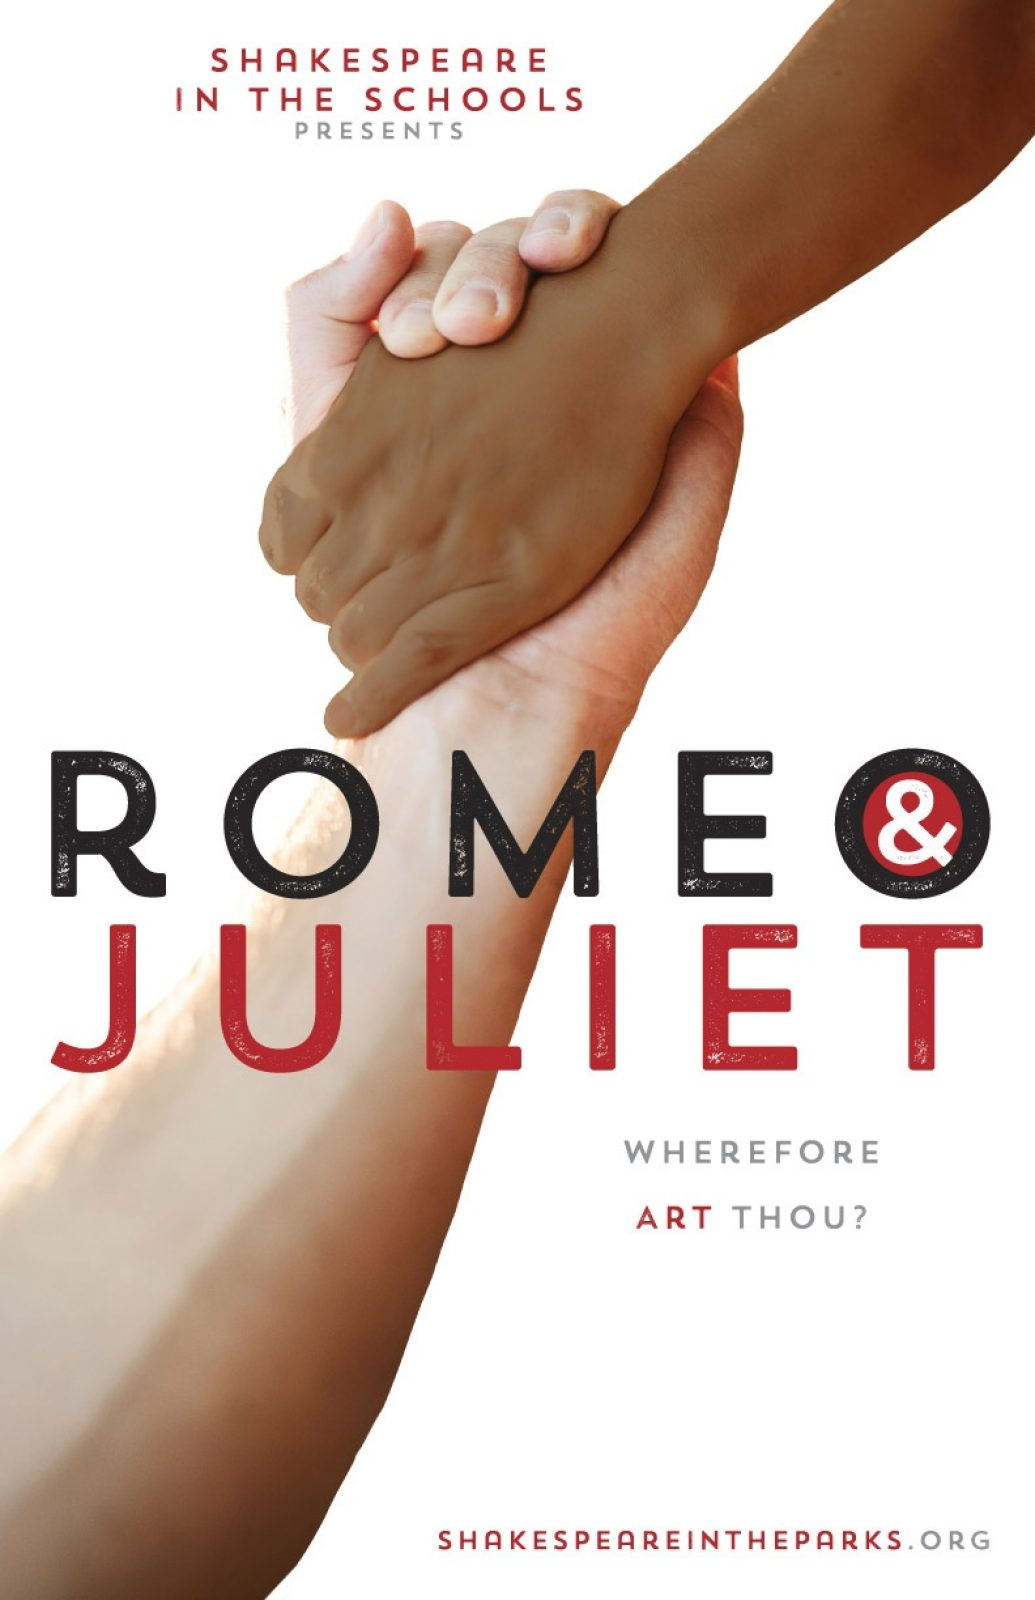 Romeo Juliet19 Poster Final